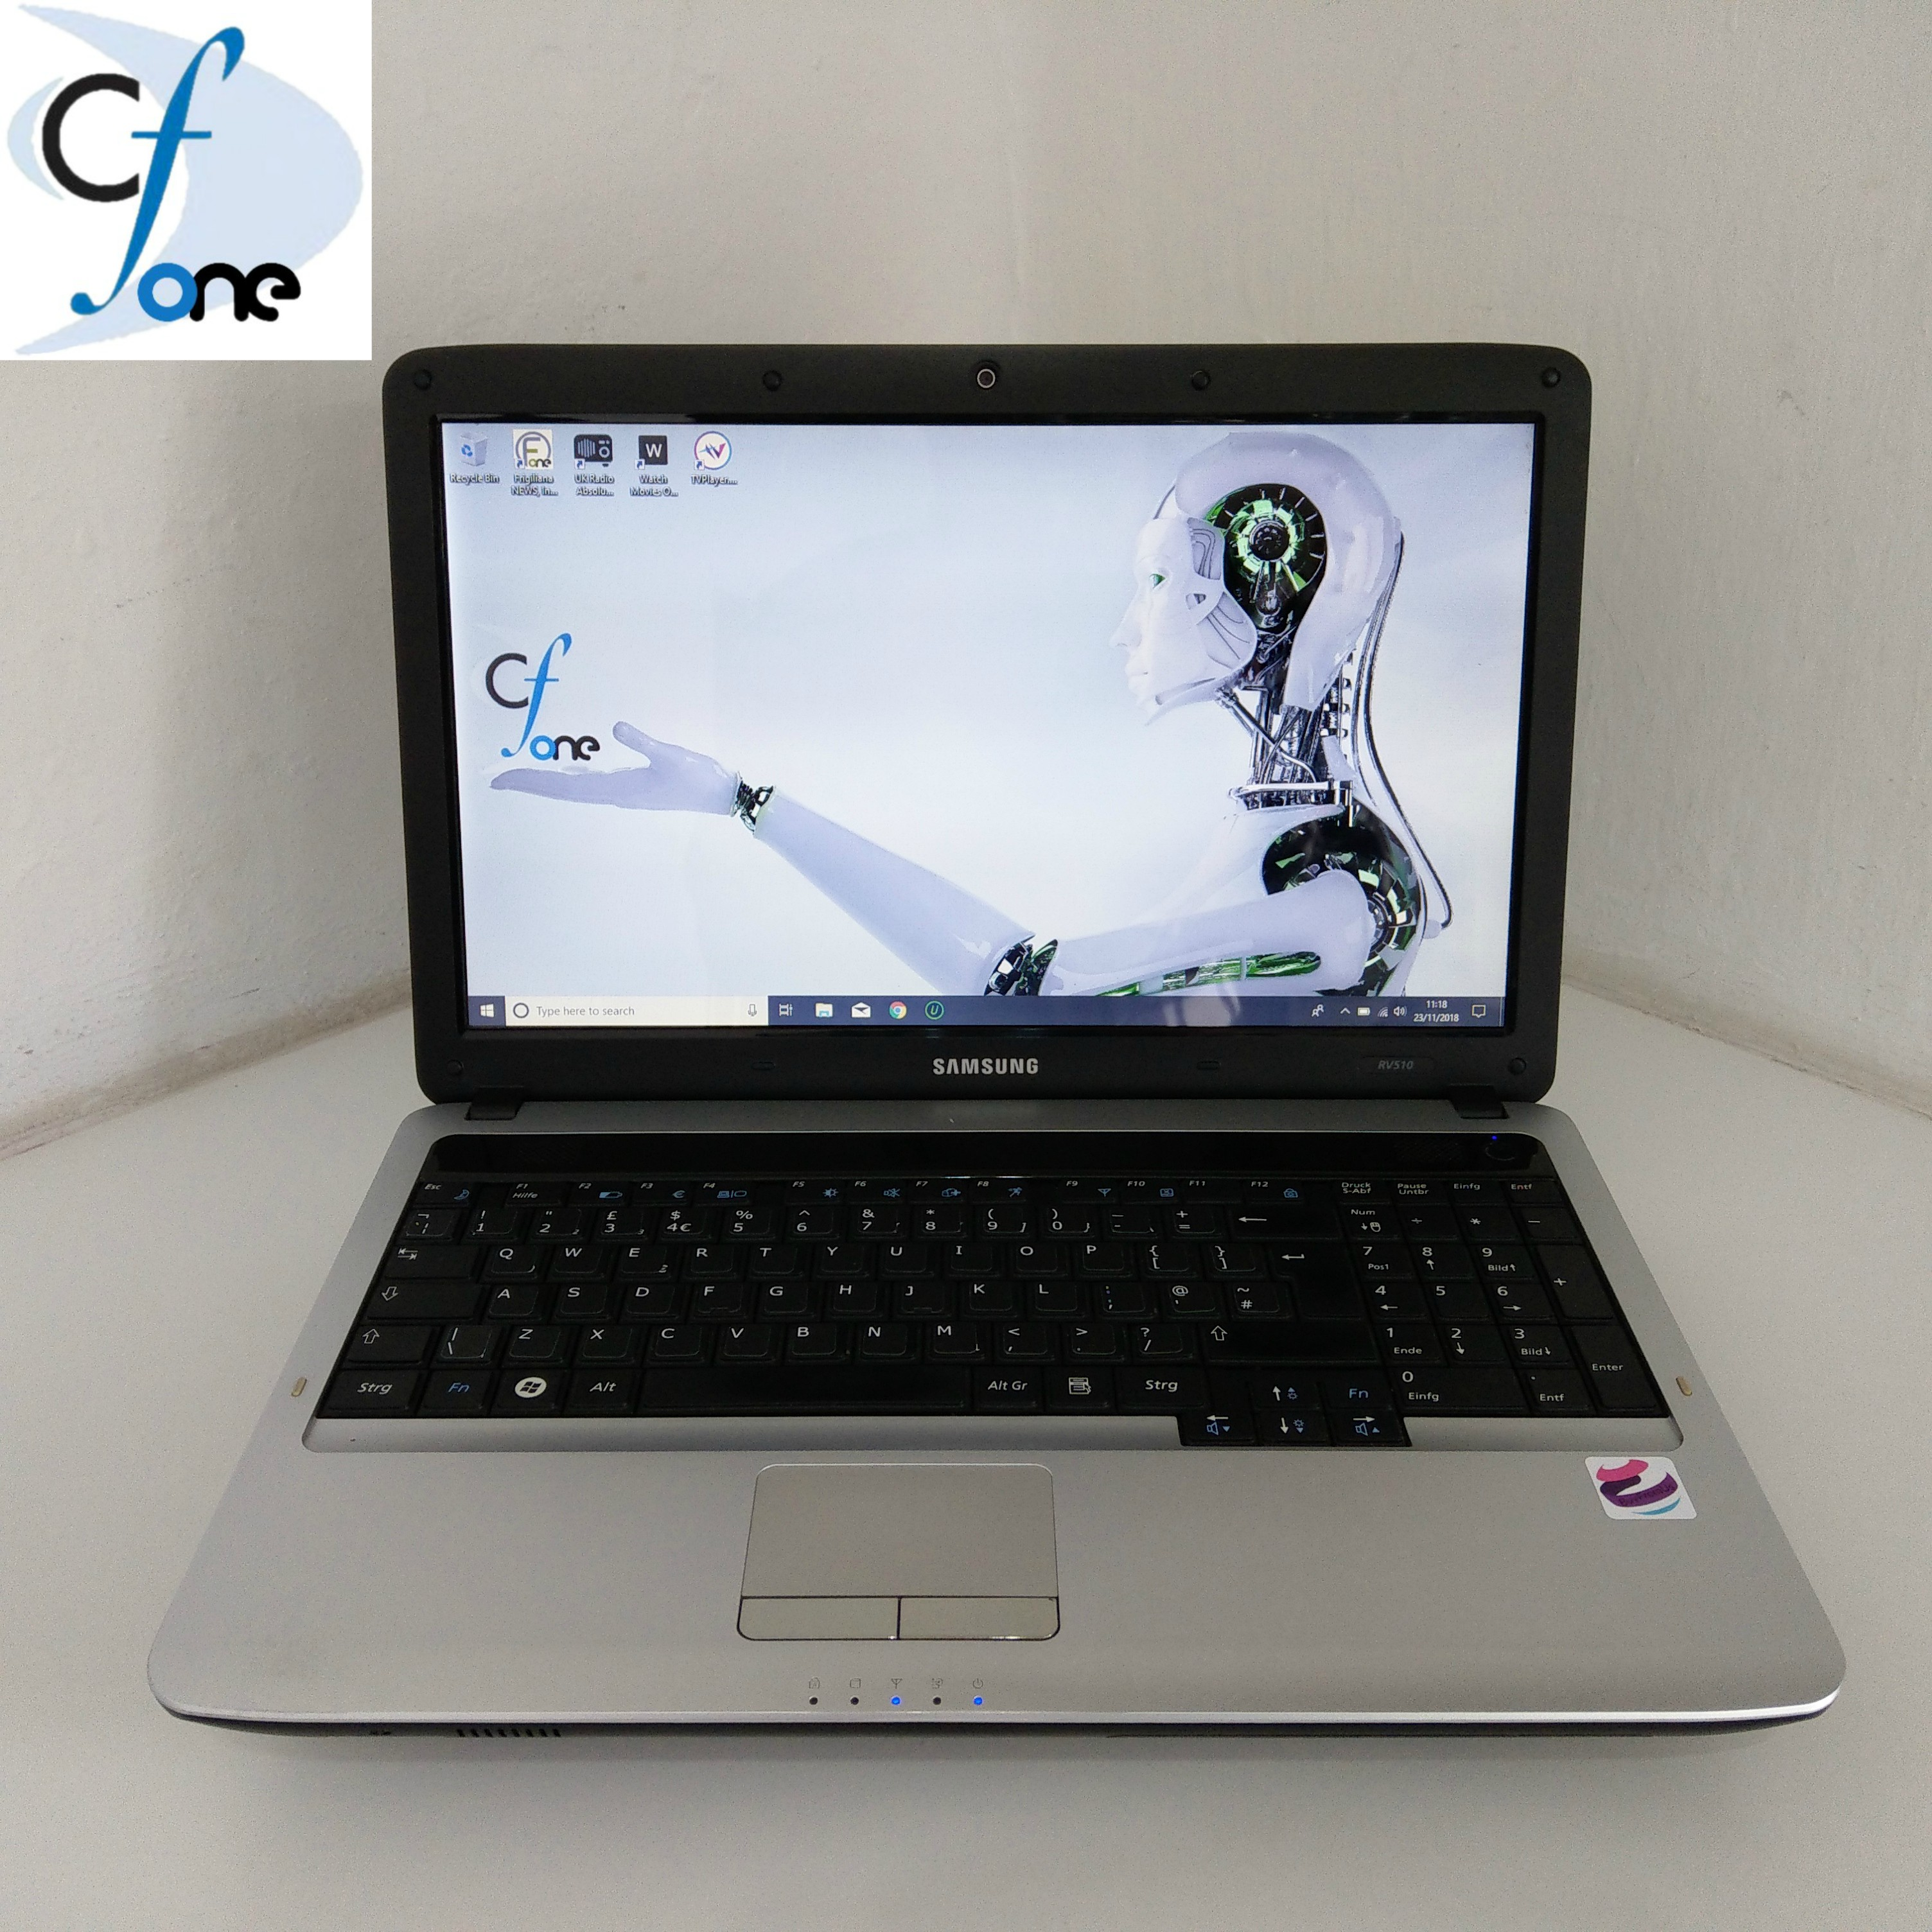 Buy Online with 12 months Guarantee Samsung RV510 Laptop Computer